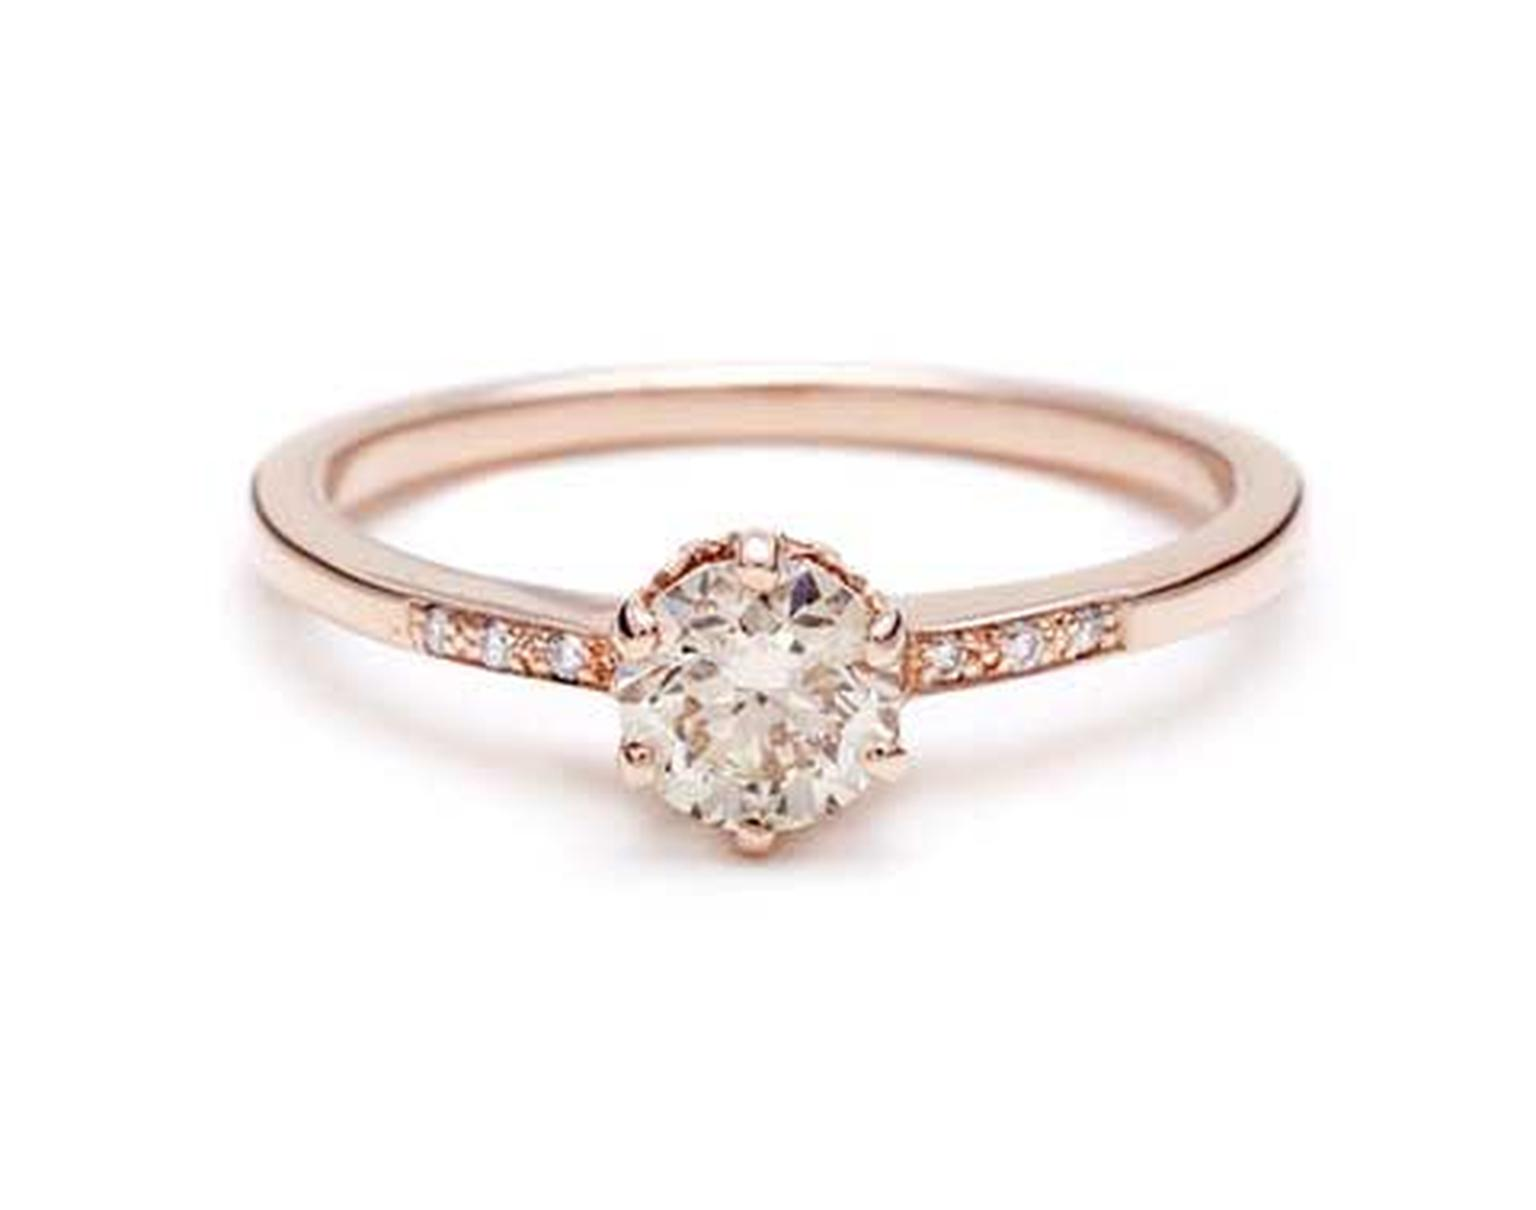 Anna Sheffield Hazeline rose gold engagement ring, set with a 1.0ct white diamond and white diamond accents.